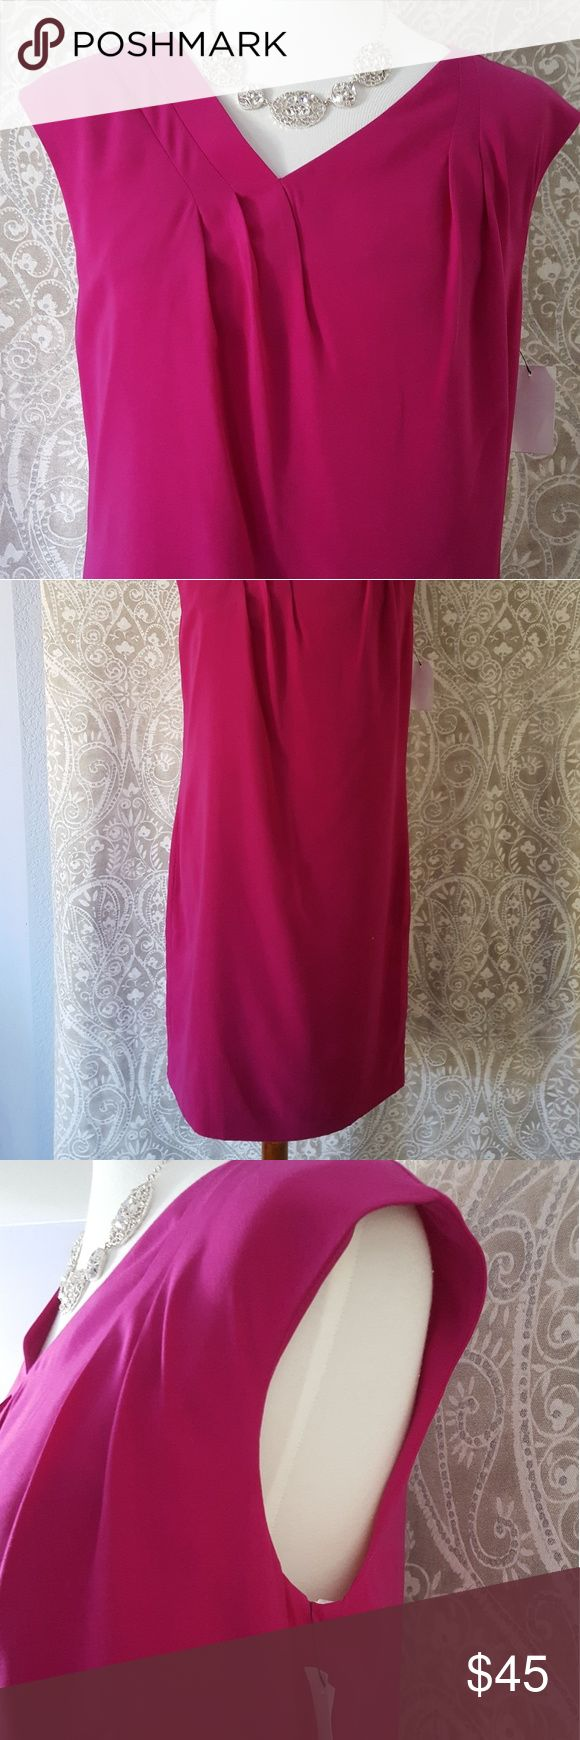 NWT Ellen Tracy fuschia dress, size 8 Gorgeous above the knee dress with graceful darts on the bodice.  NWT, perfect condition, zips on the back Ellen Tracy Dresses Midi